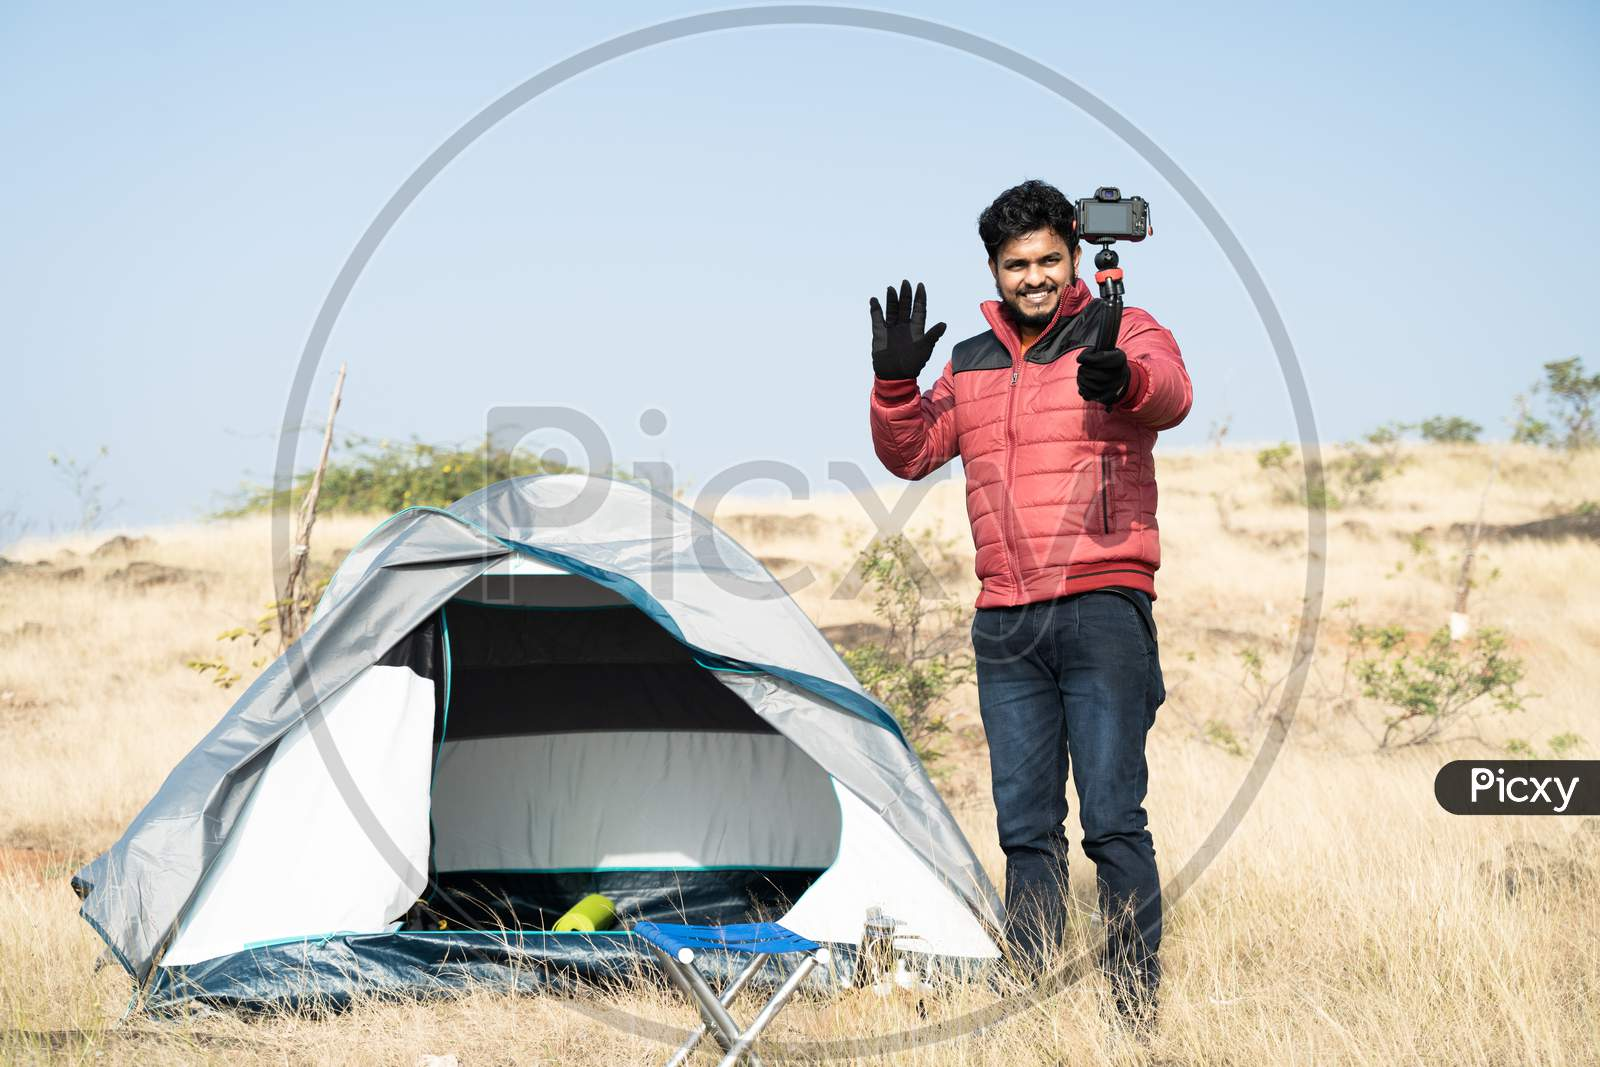 Wide Angle Shot Of Young Traveller Busy Talking With Camera On Top Of Mountain In Front Of Camping Tent - Concept Of Travel Vlogger, Blogger Or Influencer Recording Video During Hiking.